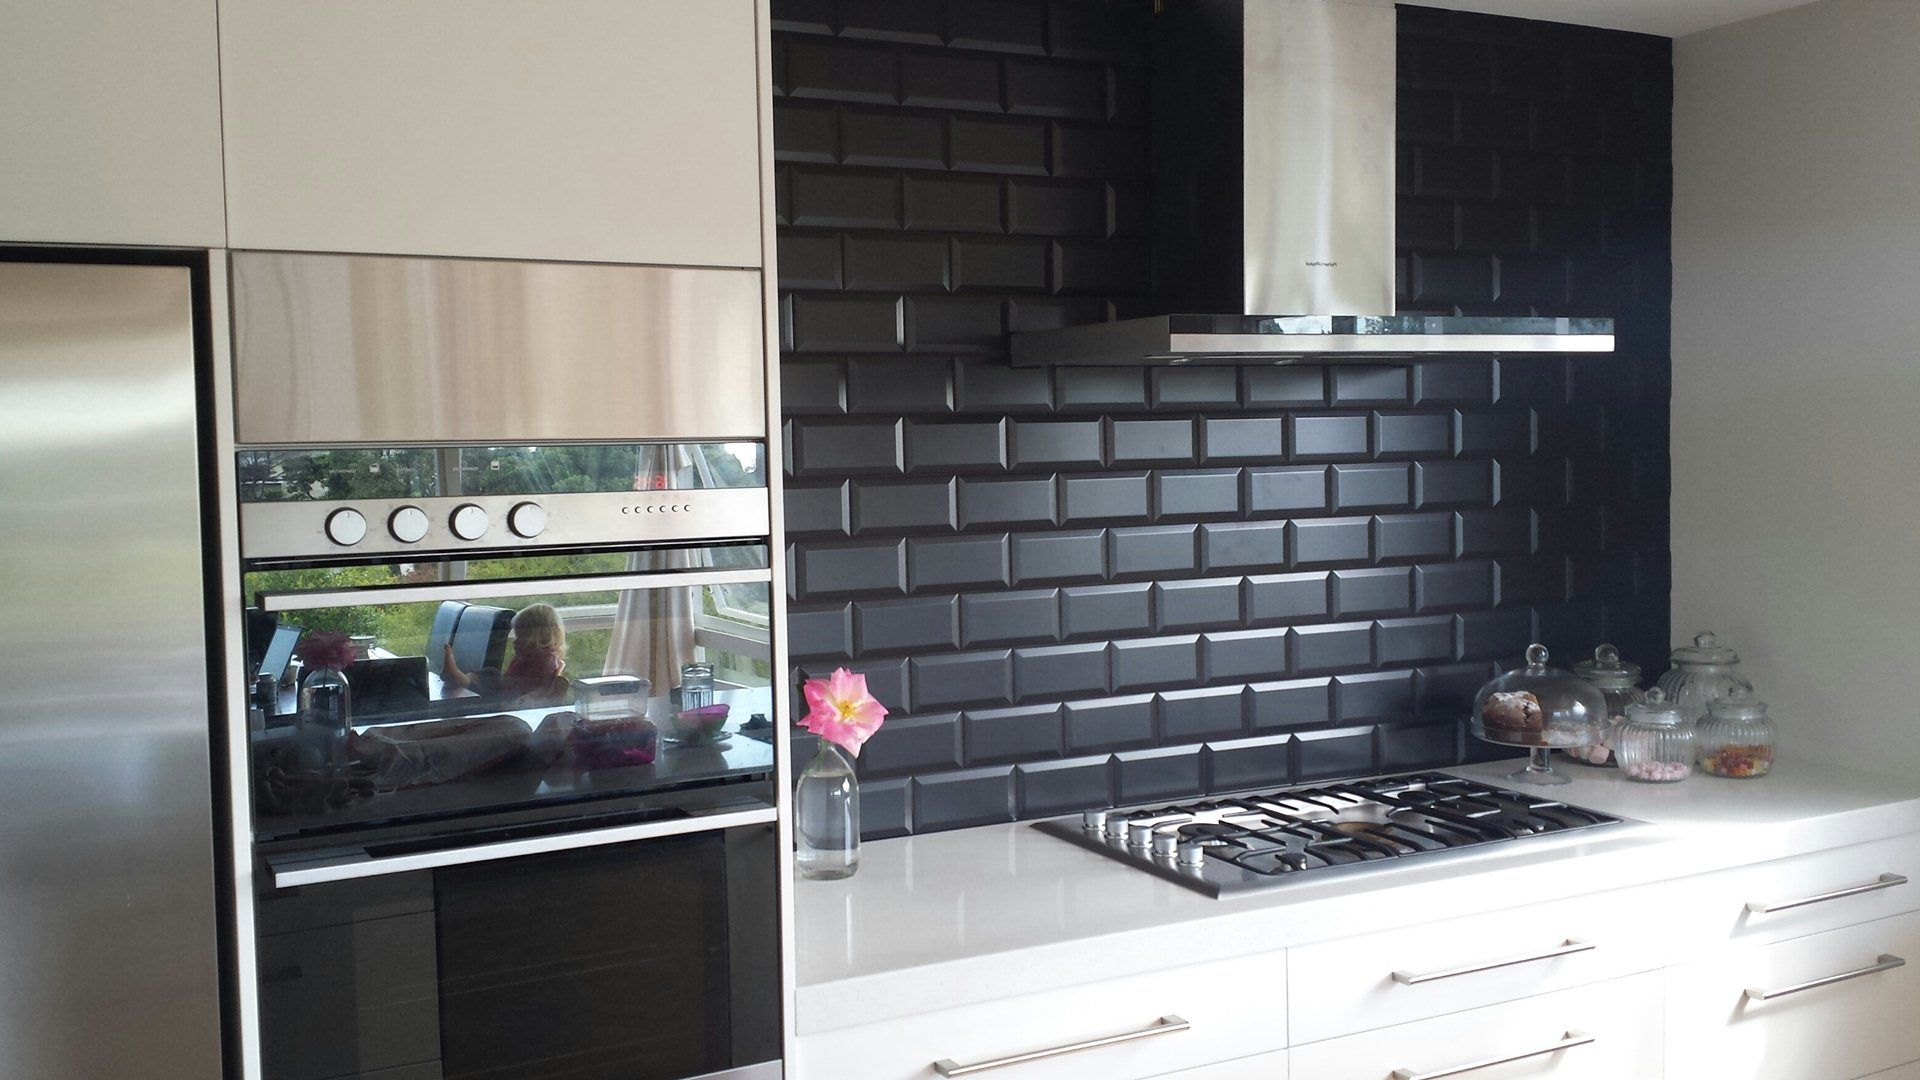 Image of: Black Subway Tile Kitchen Backsplash | backsplash ideas ...